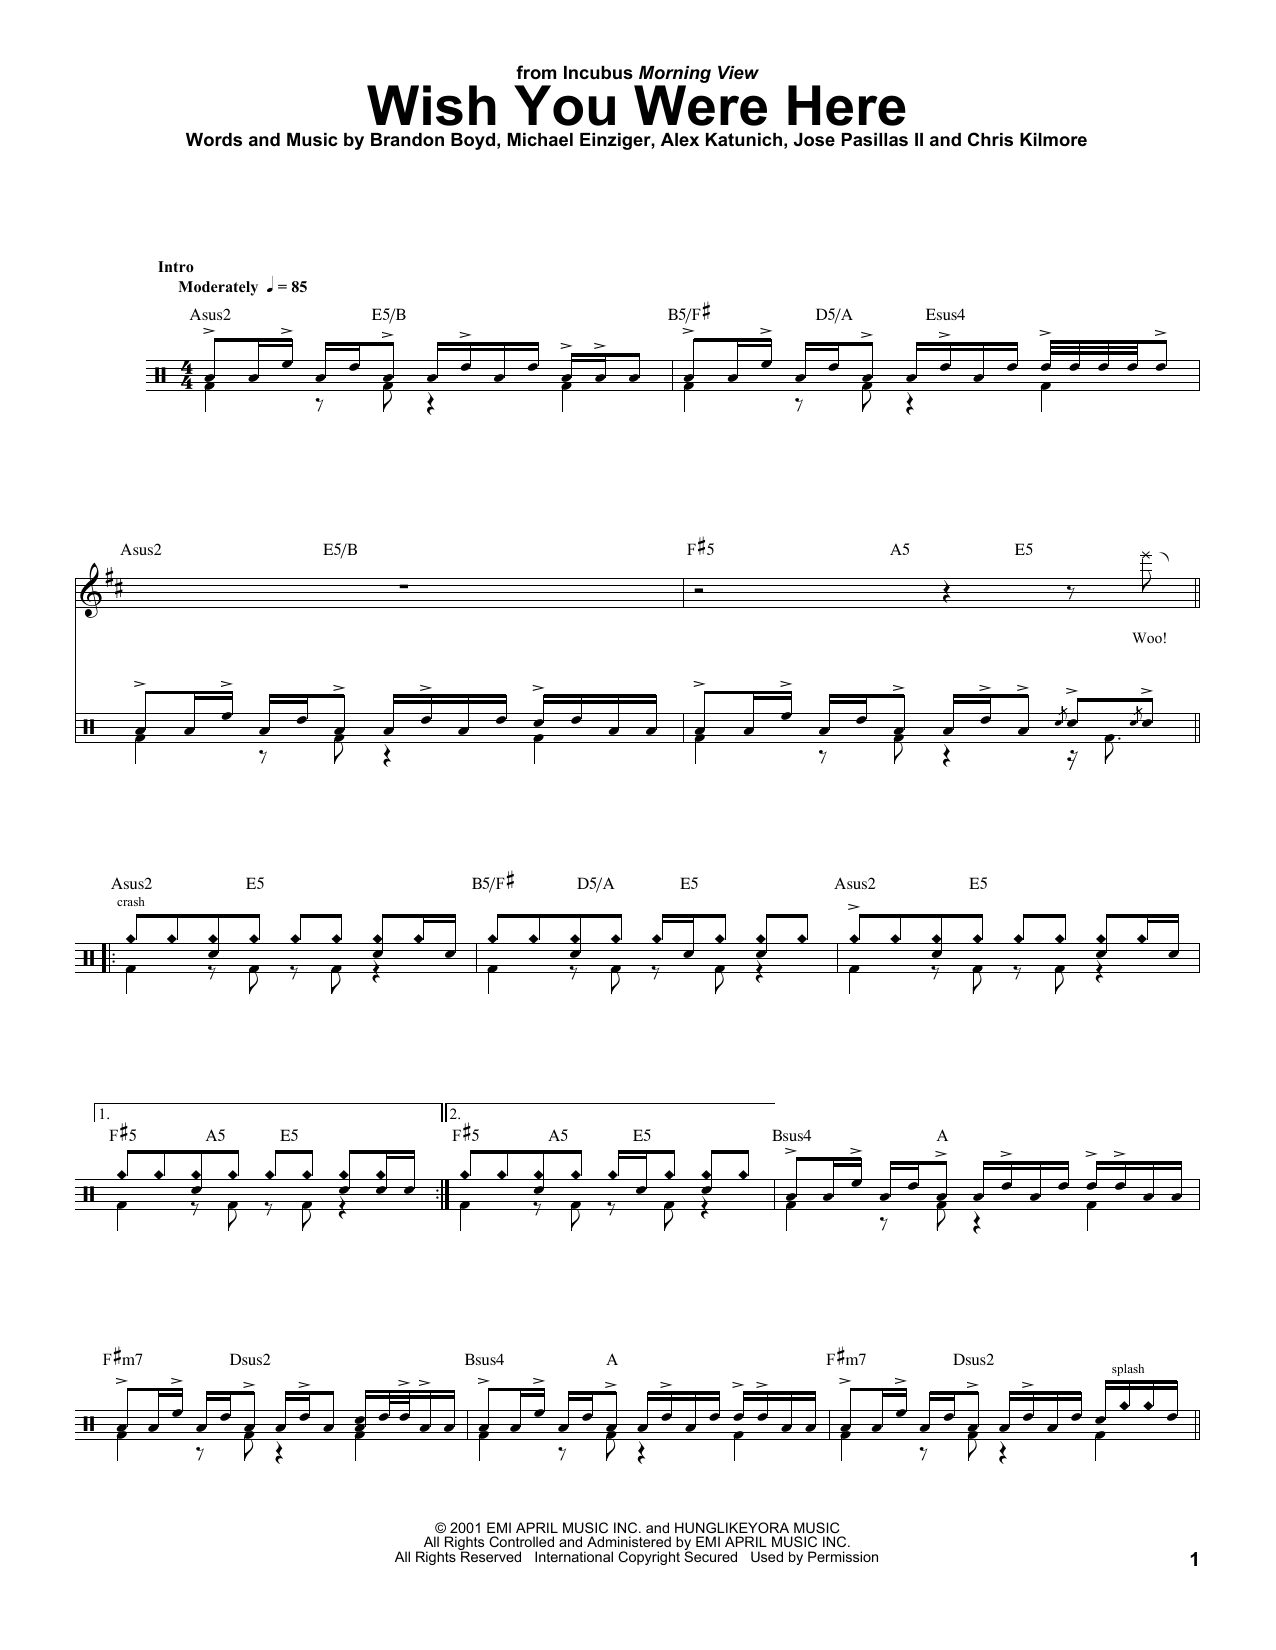 Guitar Chords Incubus Wish You Were Here Idea Gallery